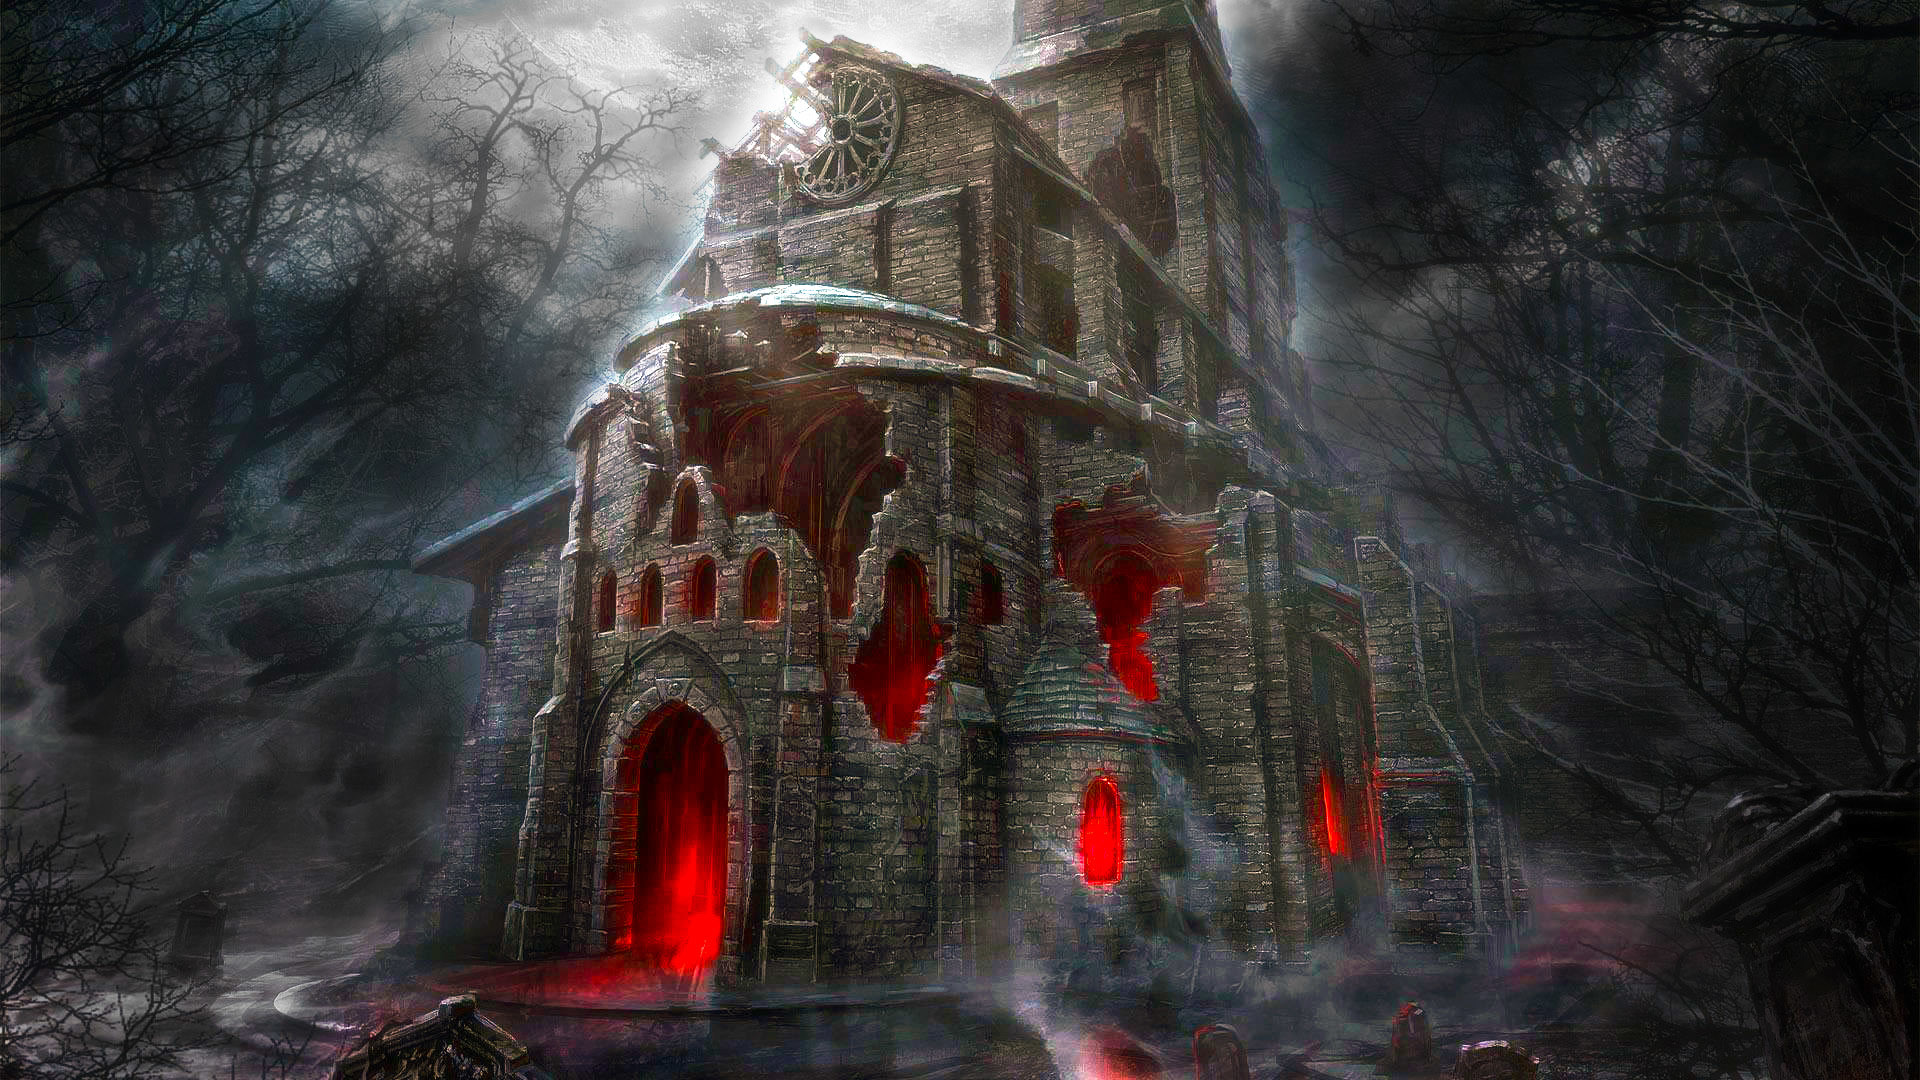 hd horror wallpapers 1080p (61+ images)